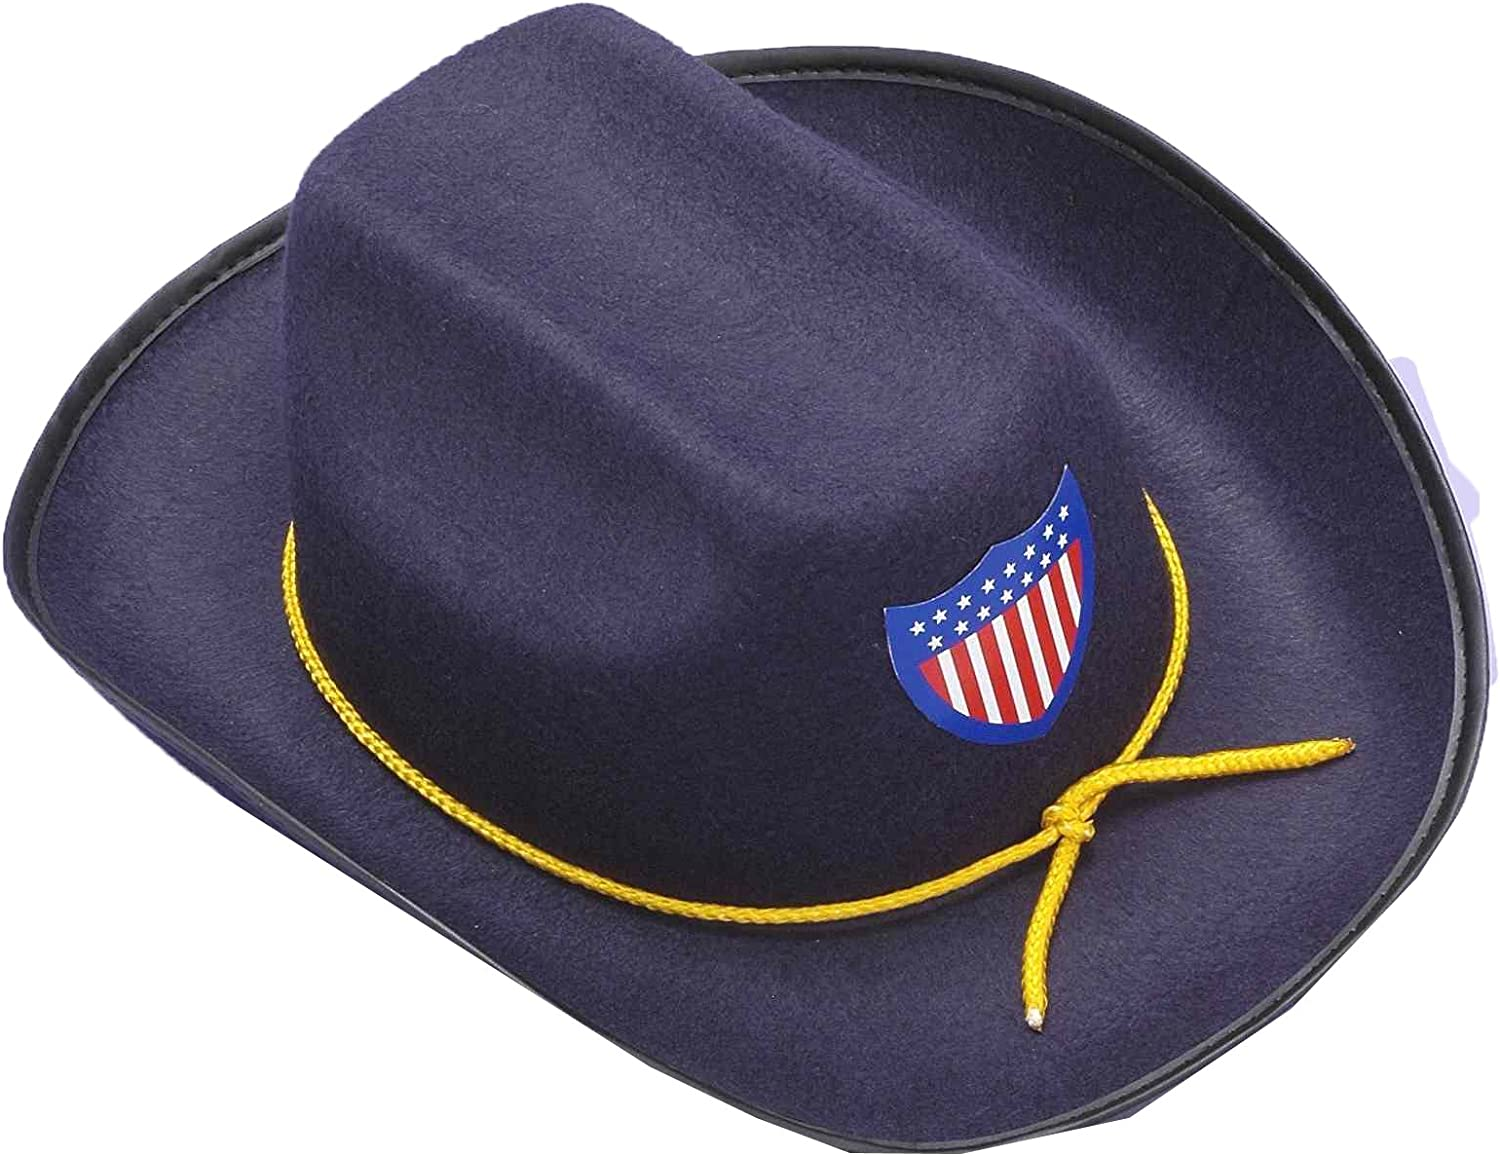 Forum Union Officer's Cap